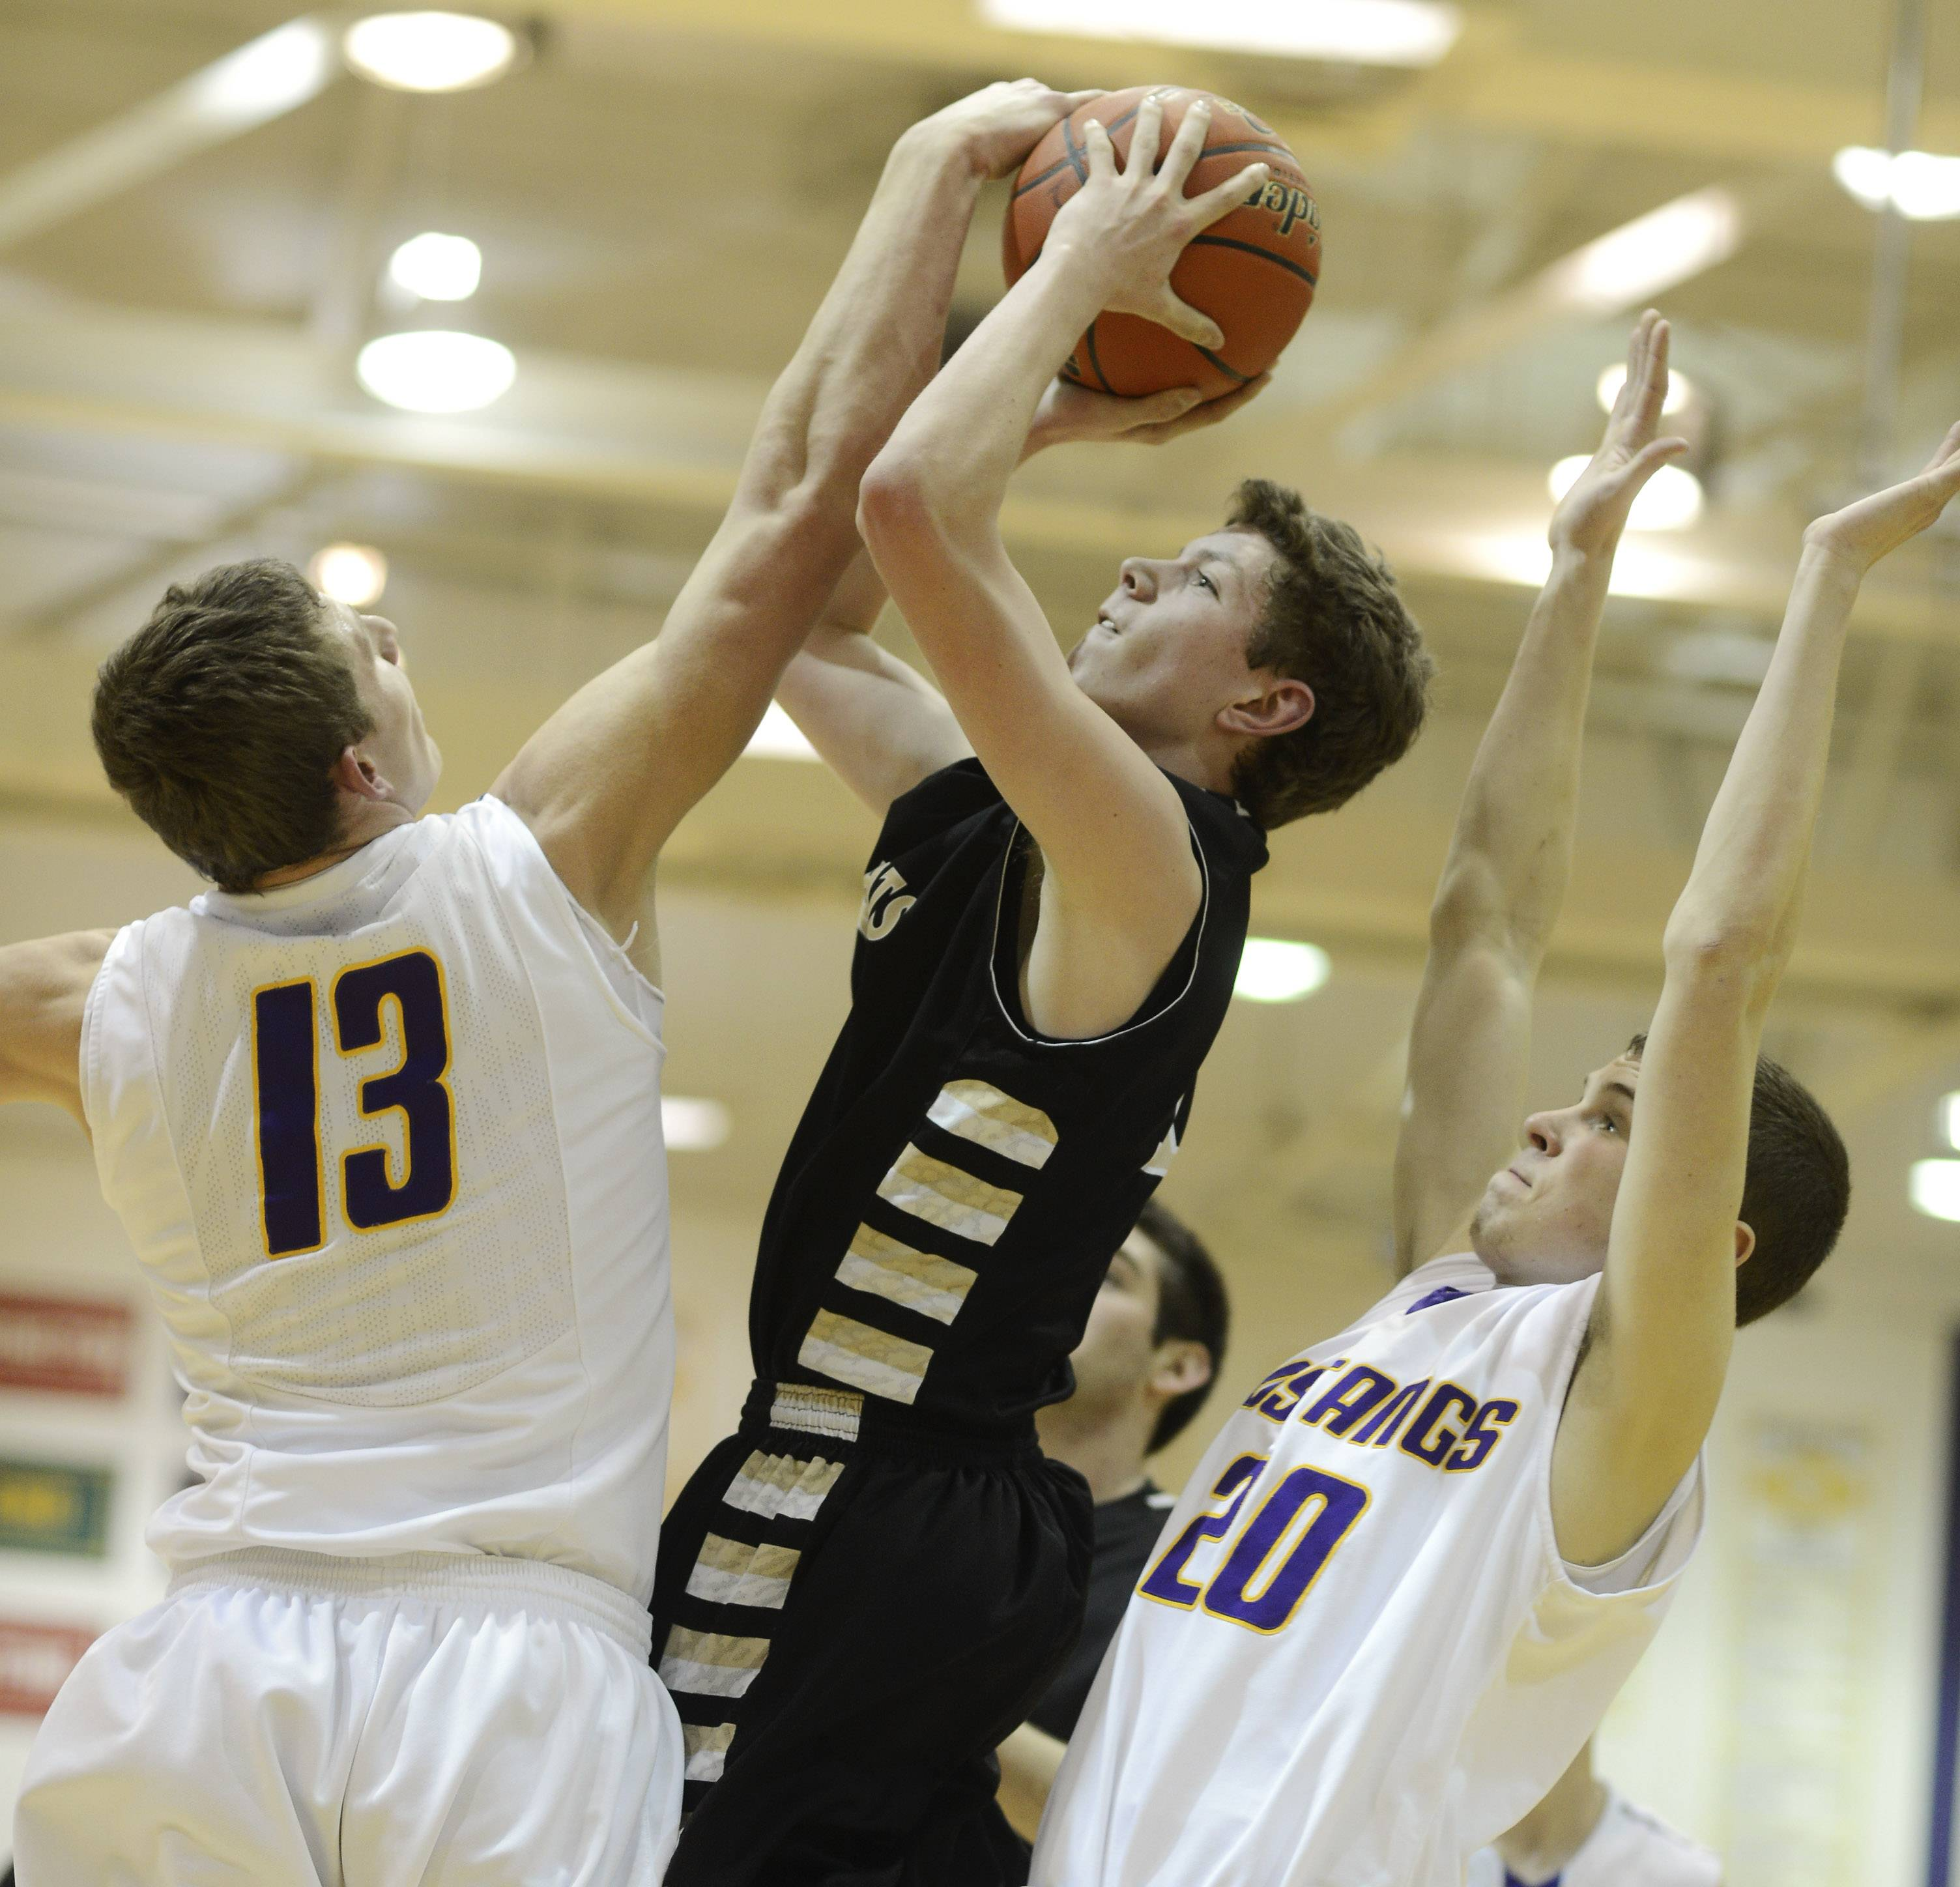 Graylake North's Lucas Buckels attempts a shot against Rolling Meadows' Matt Dolan, left, and Charlie Metzger during Tuesday's game at Rolling Meadows.